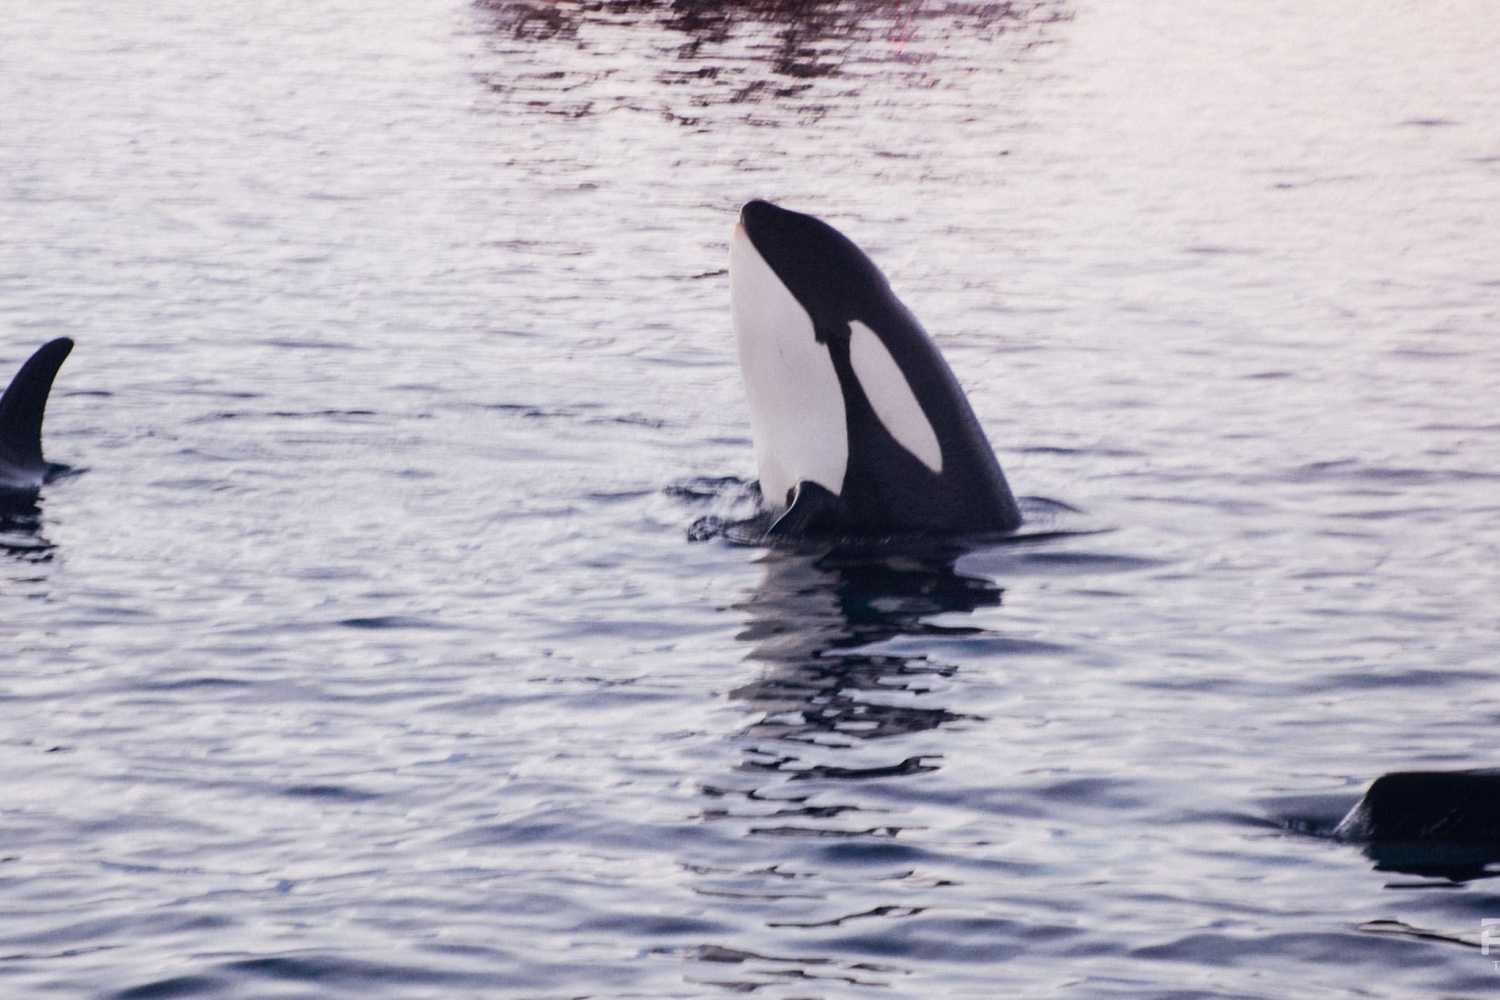 An orca sticking it's head up from the water